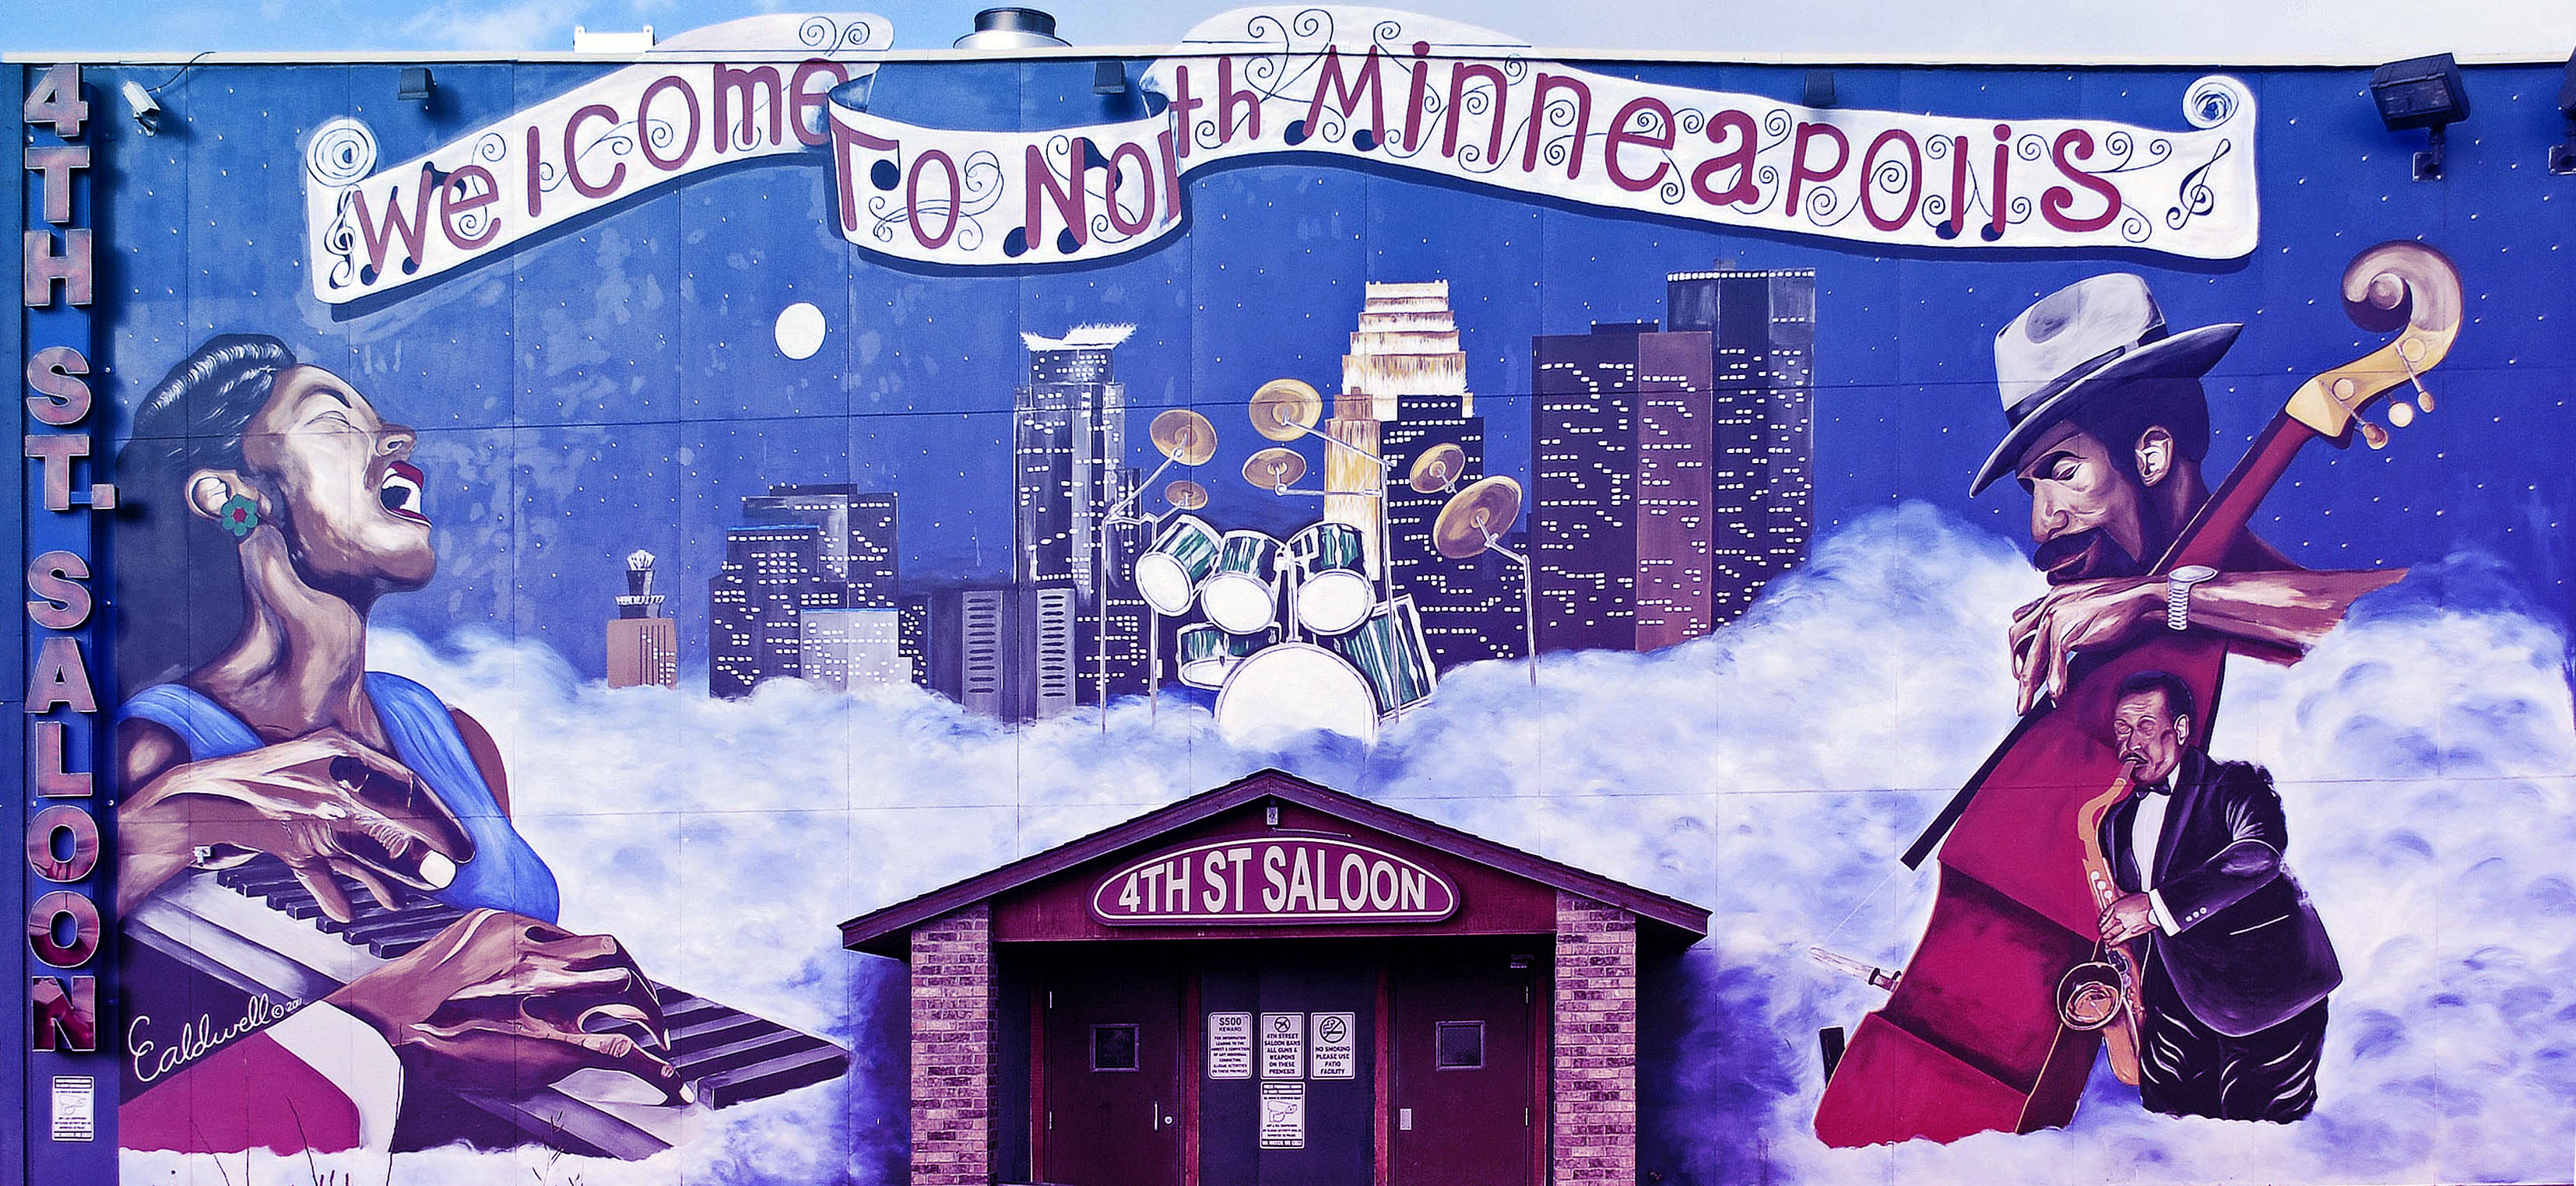 Welcome to North Minneapolis Mural